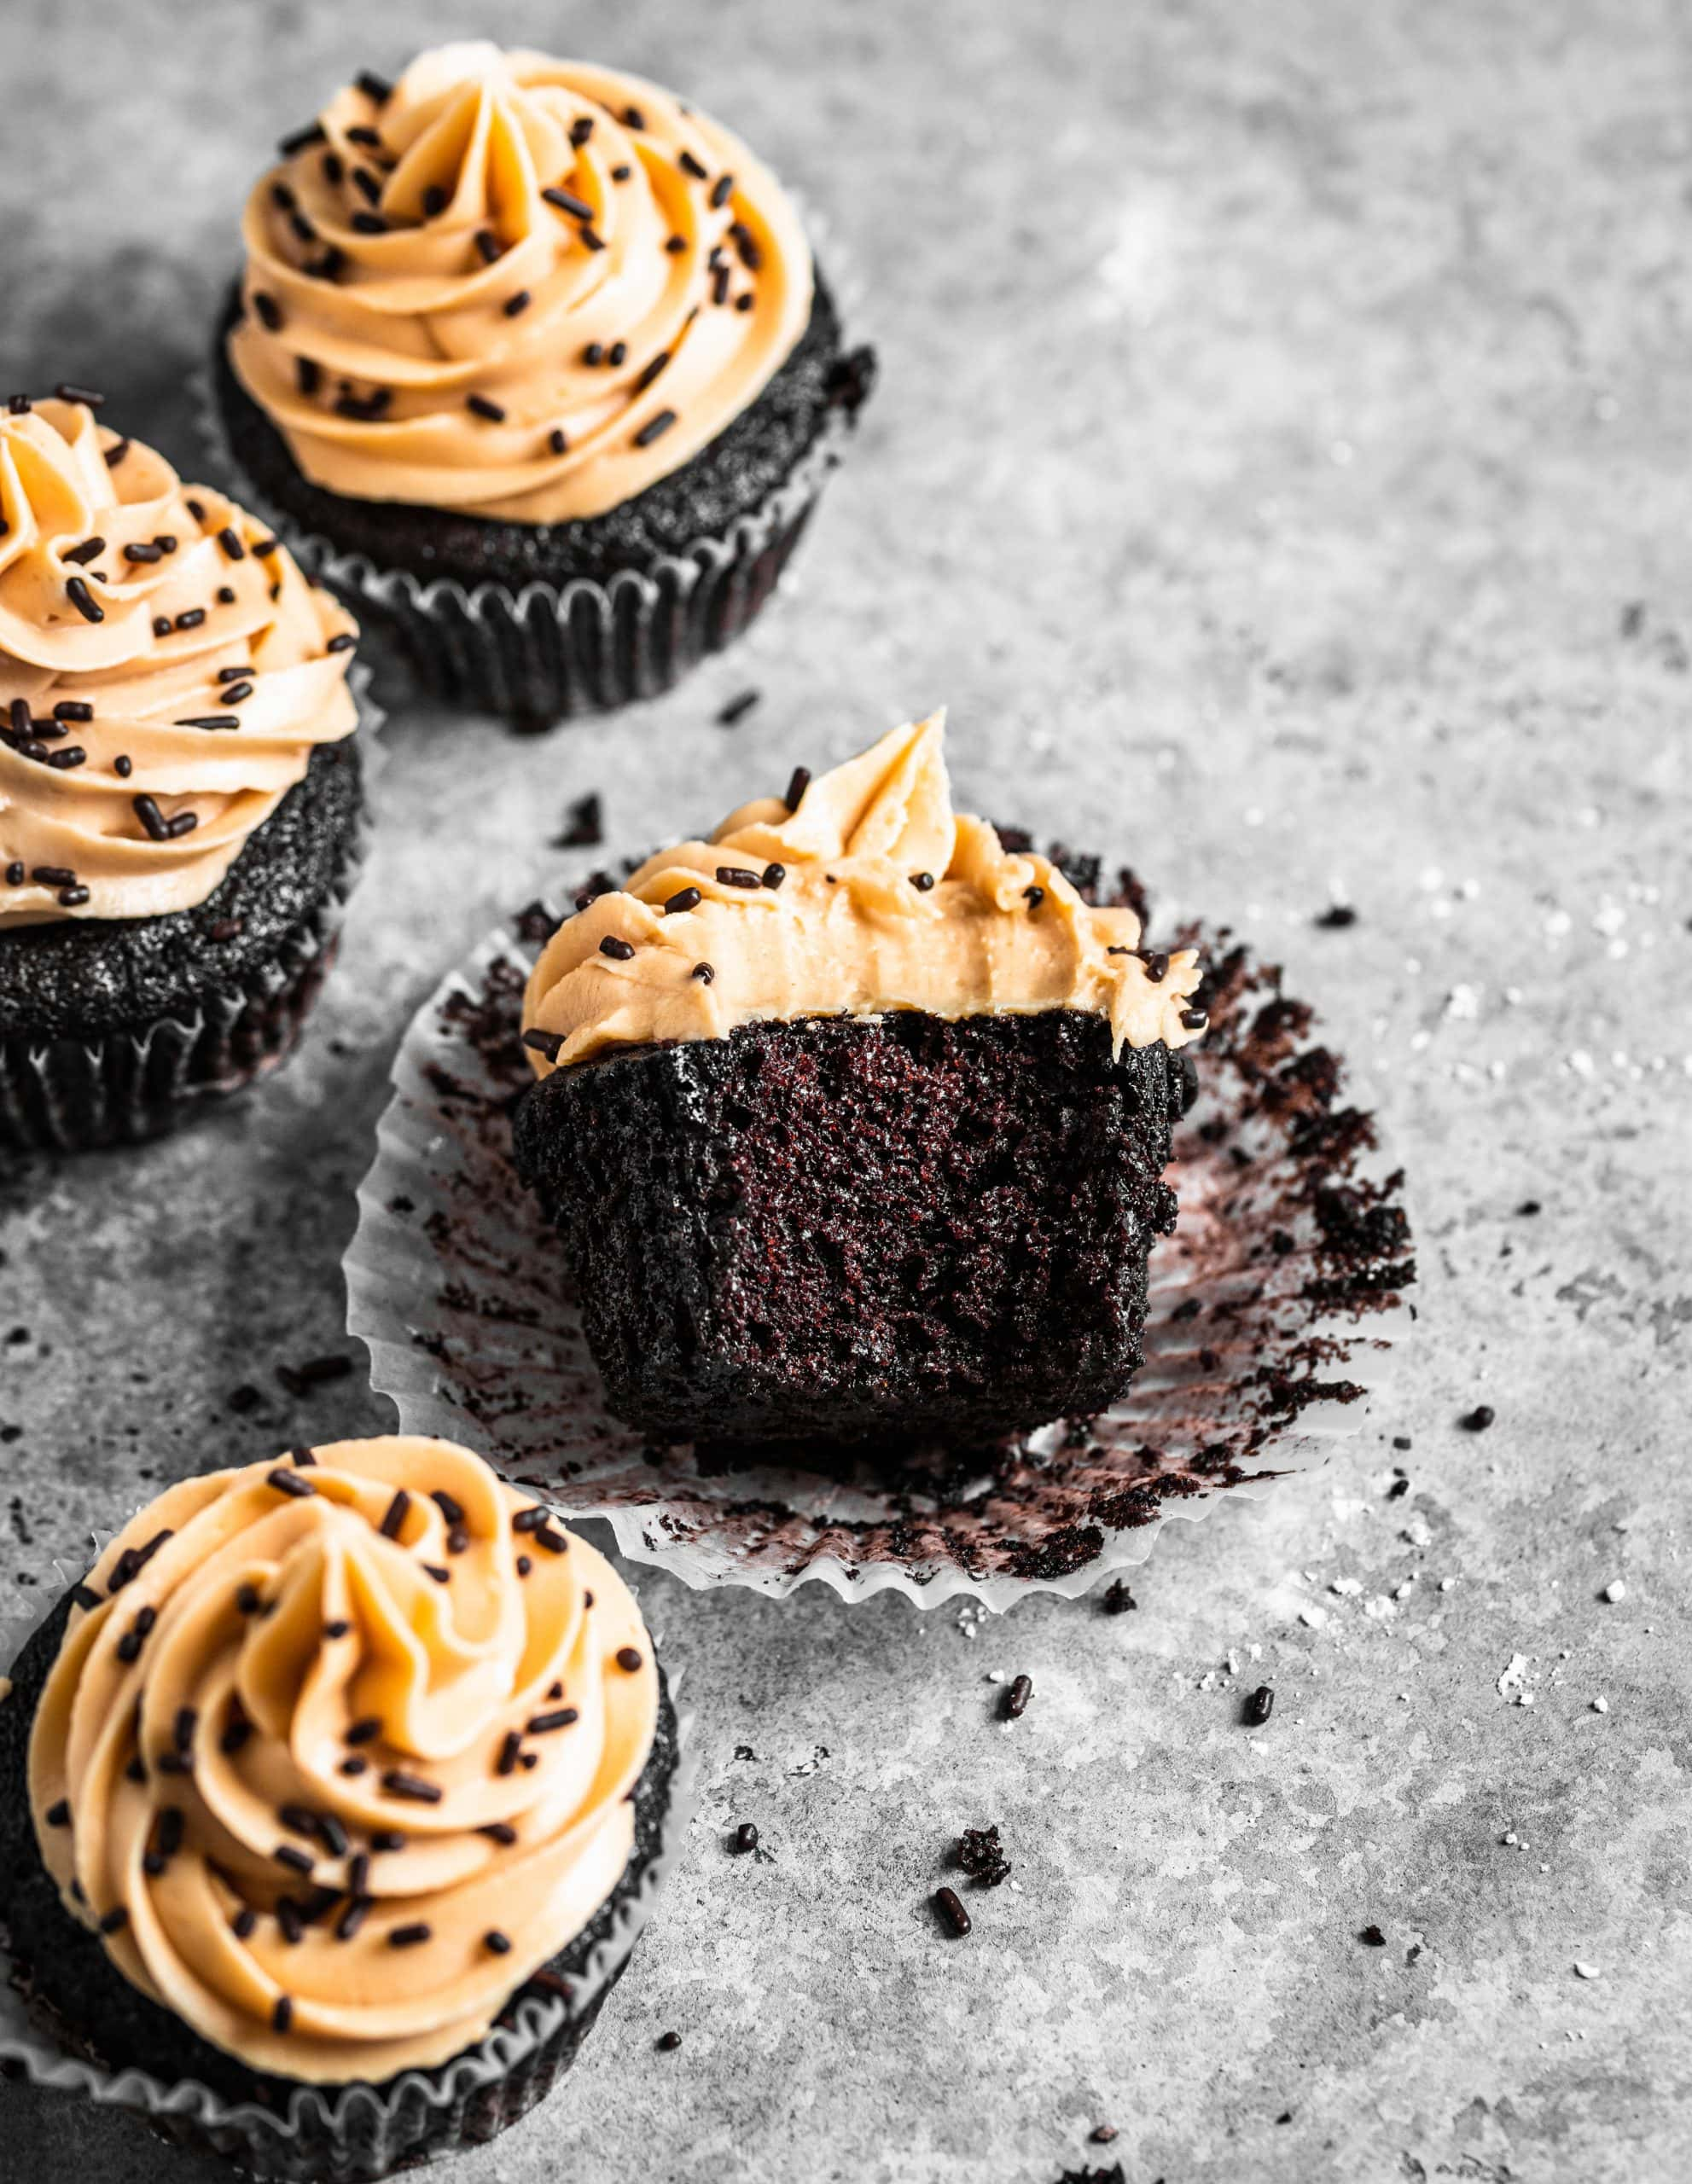 Small Batch Chocolate Cupcakes with Peanut Butter Buttercream Frosting